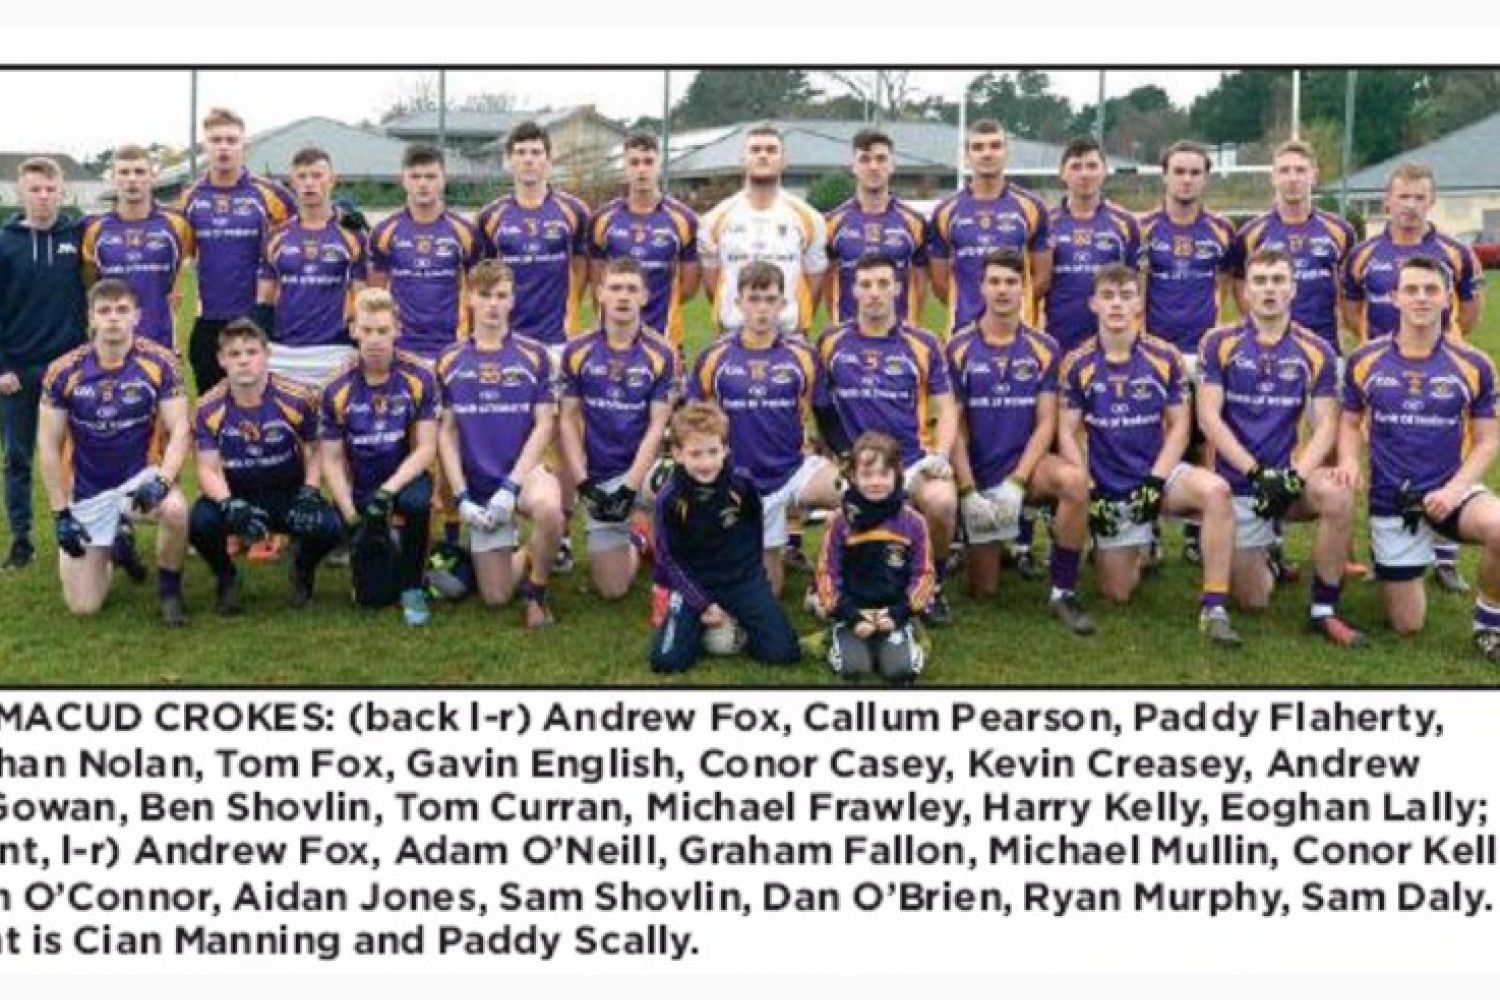 County FInal for Crokes U21 Footballers - Saturday 17th at 2pm